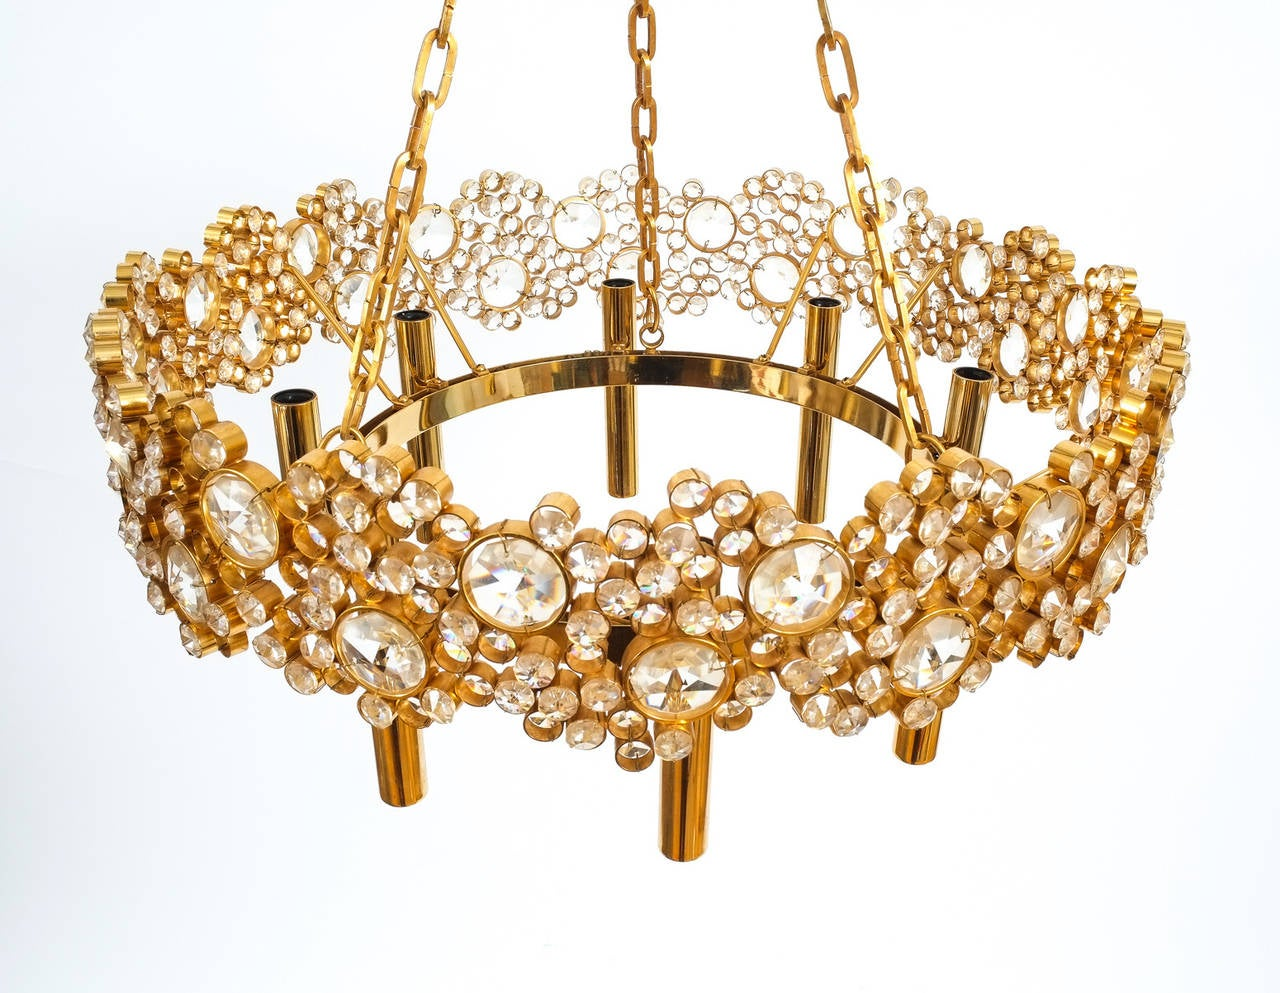 Mid-20th Century Large Gilt Brass and Glass Chandelier Lamp, Palwa circa 1960 For Sale